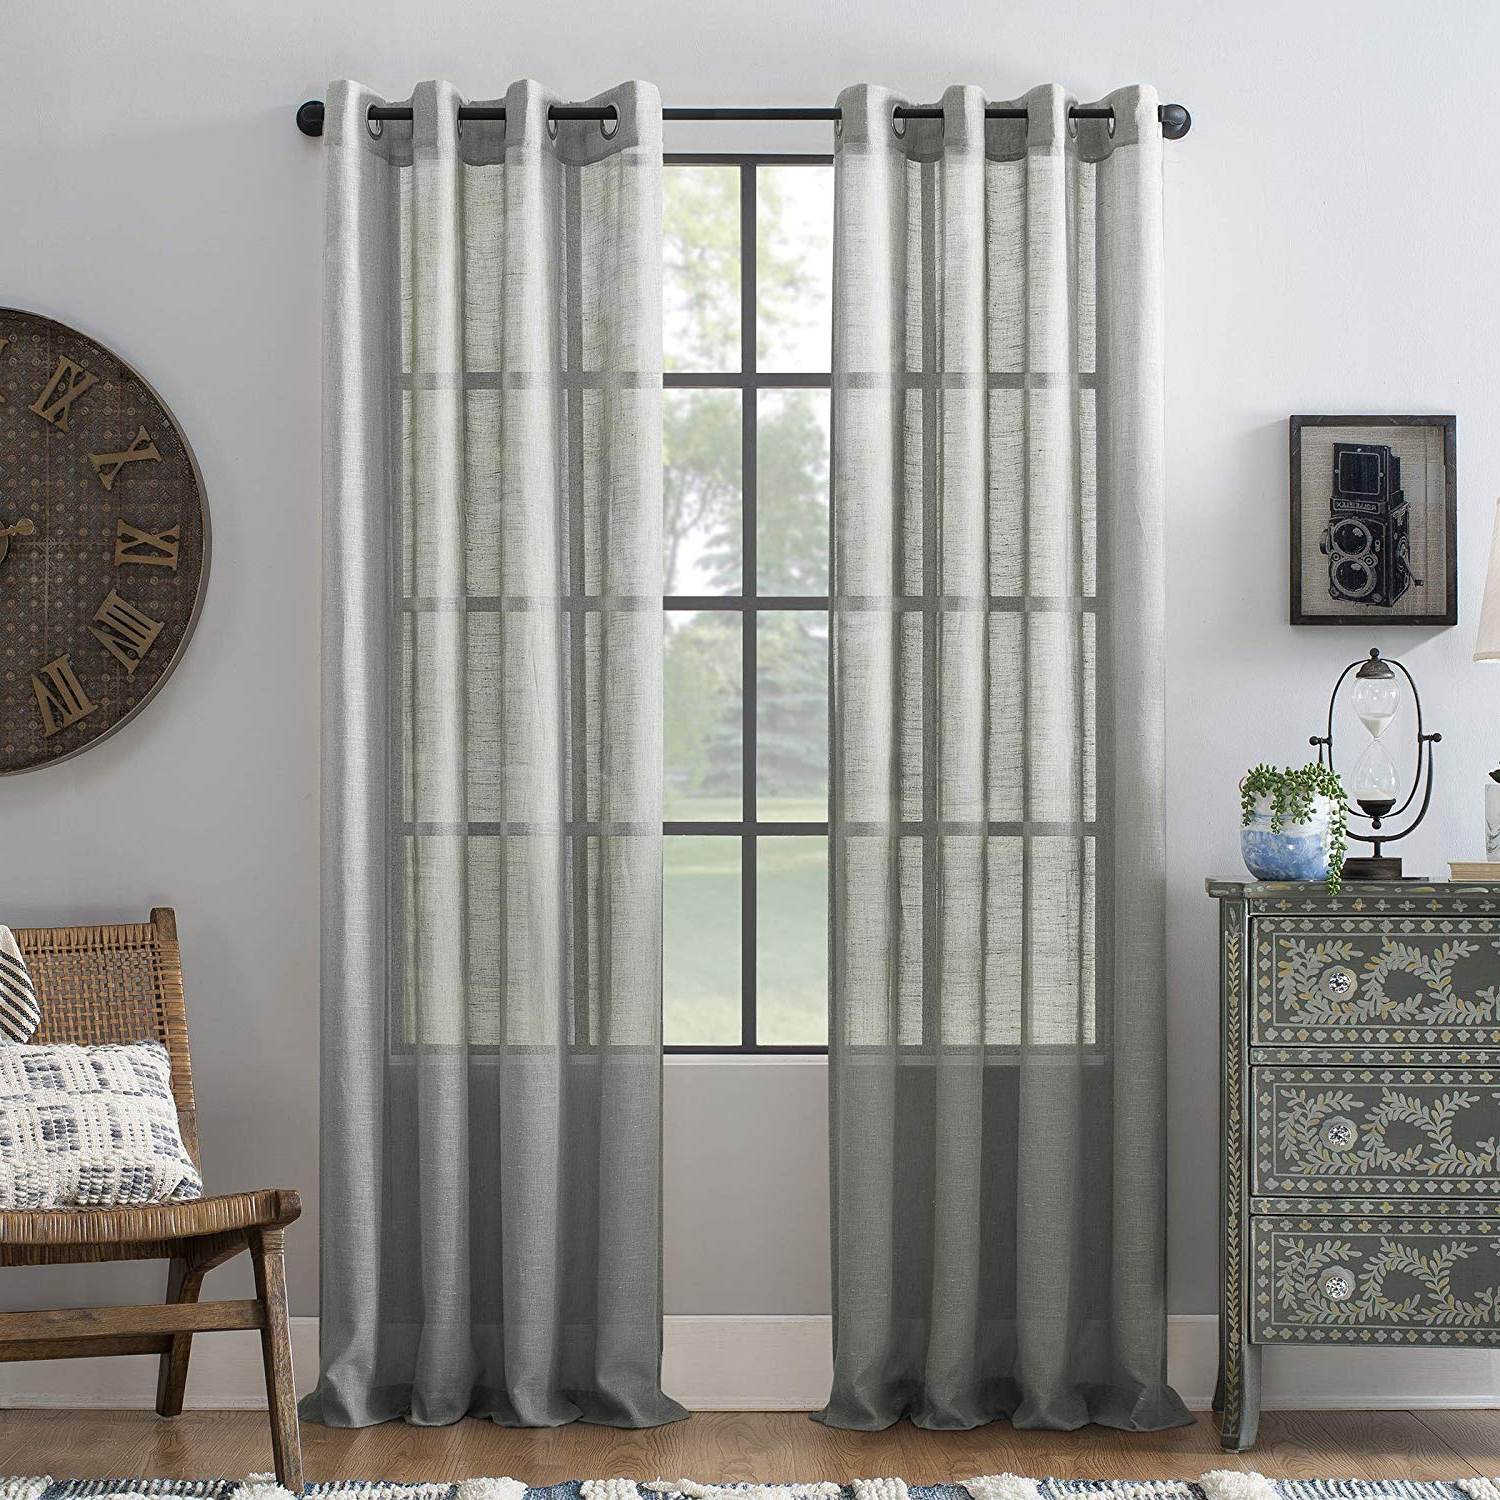 "Trendy Archaeo Slub Textured Linen Blend Grommet Top Curtain, 52"" X 84"", Gray Regarding Archaeo Slub Textured Linen Blend Grommet Top Curtains (View 19 of 20)"